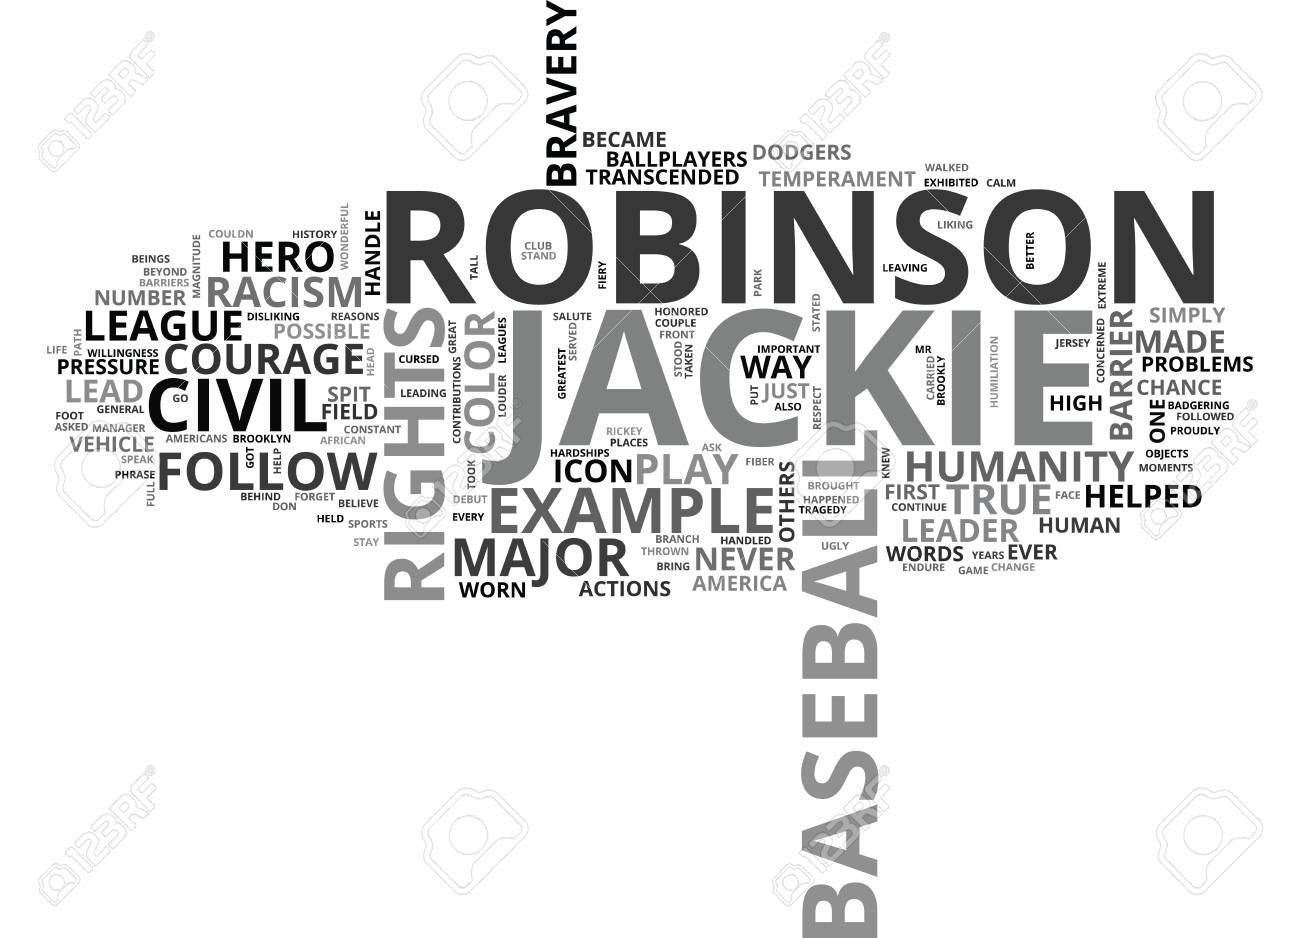 JACKIE ROBINSON A CIVIL RIGHTS HERO Text Background Word Cloud 1300x938